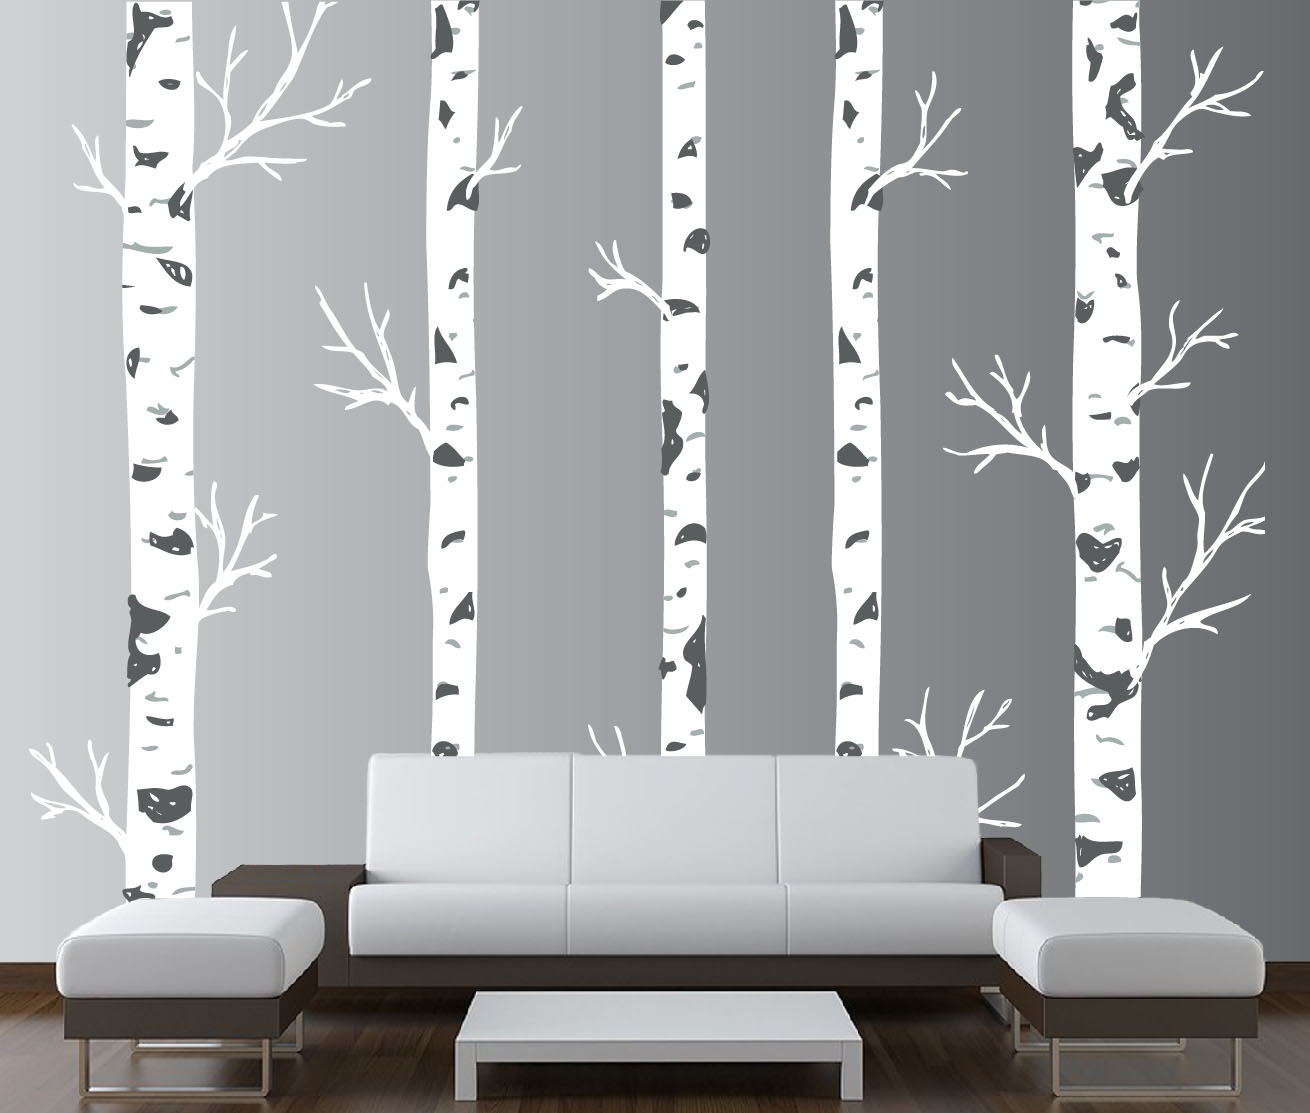 Realistic Birch Tree Wall Decal